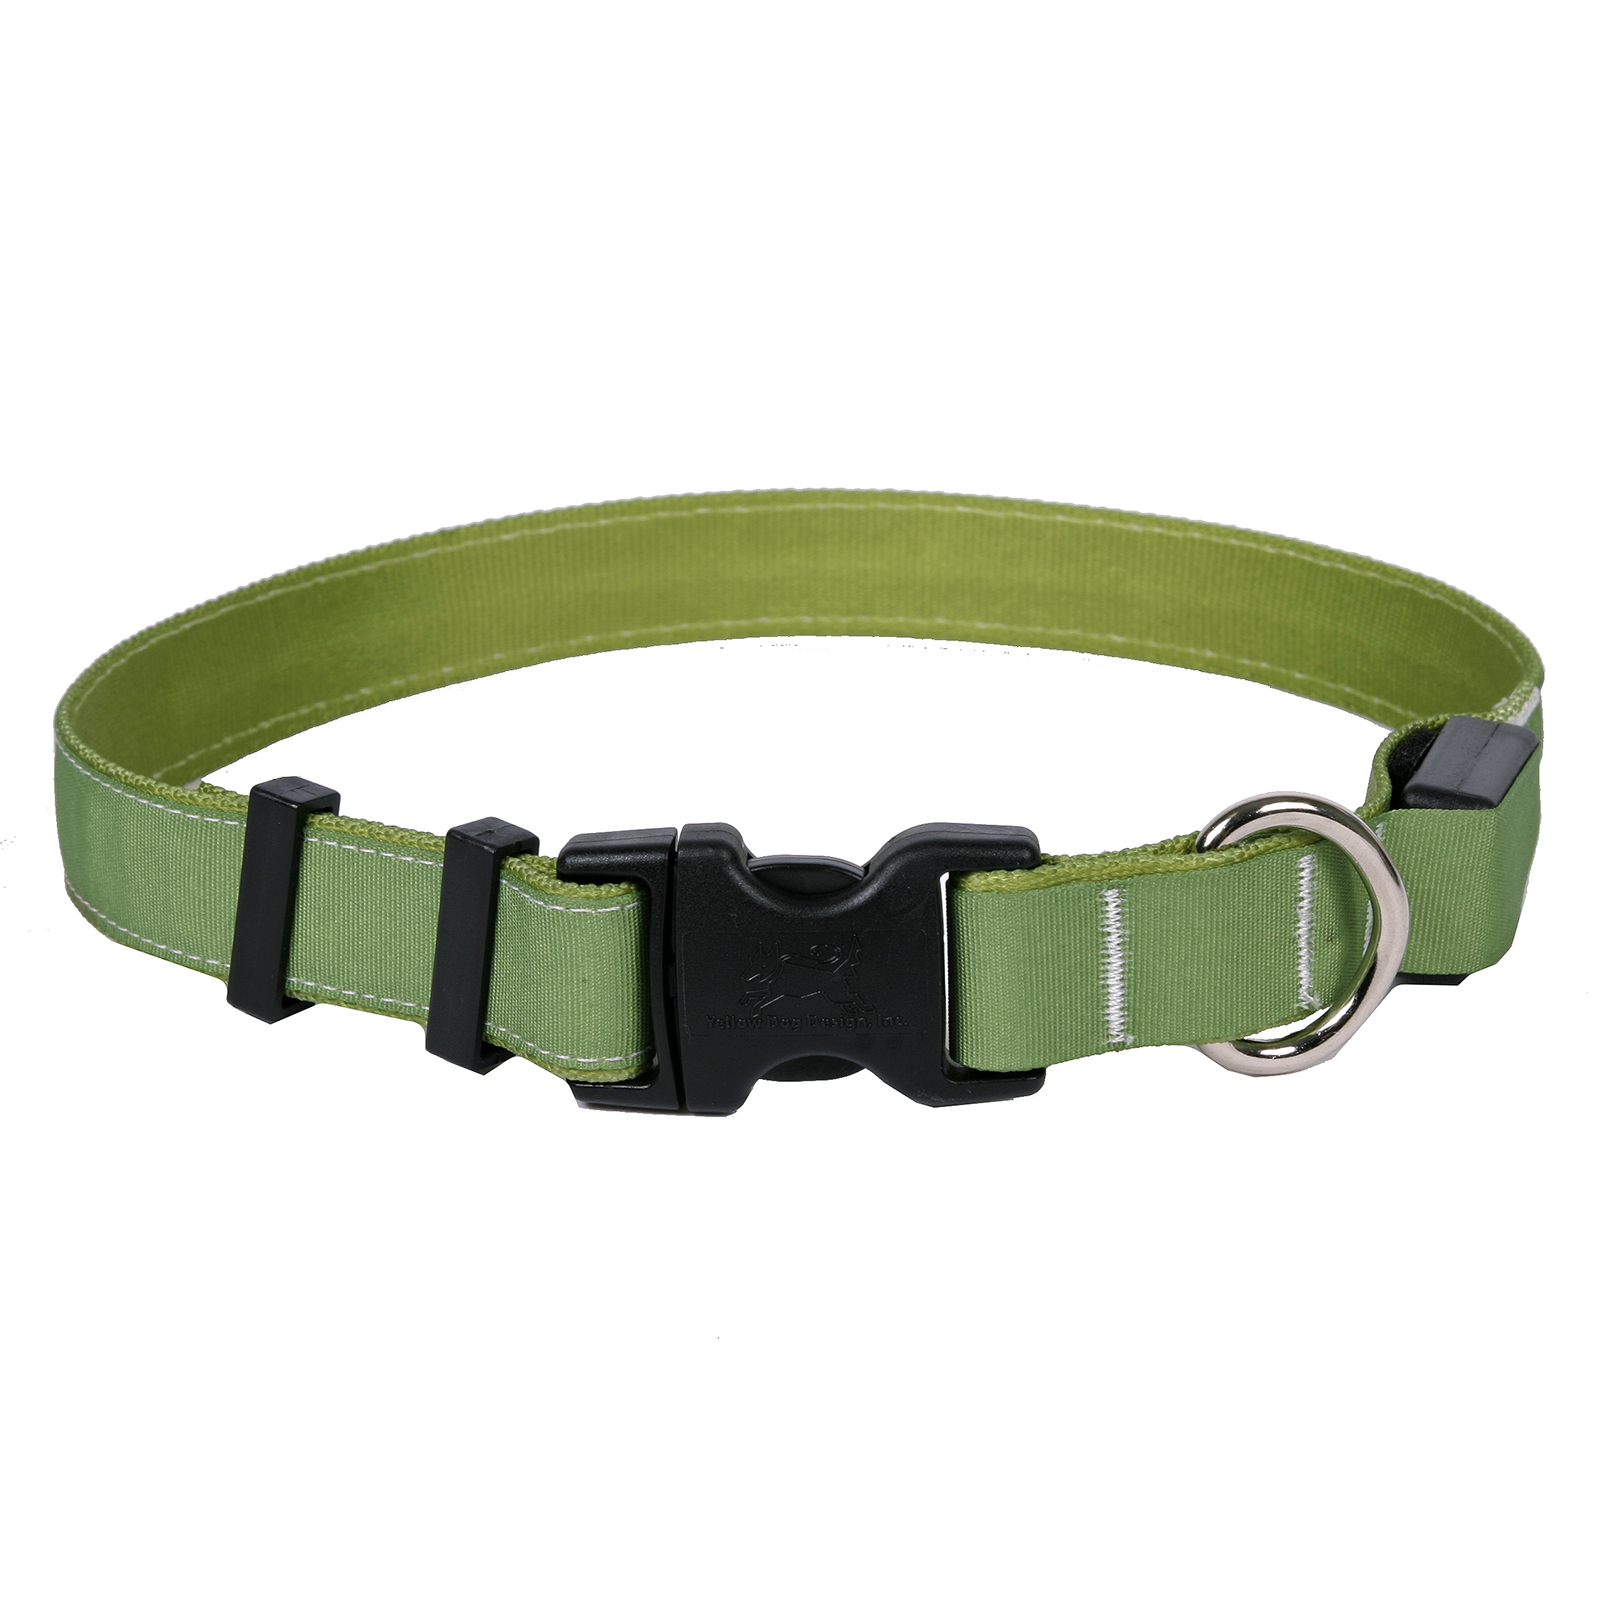 Solid Olive ORION LED Dog Collar